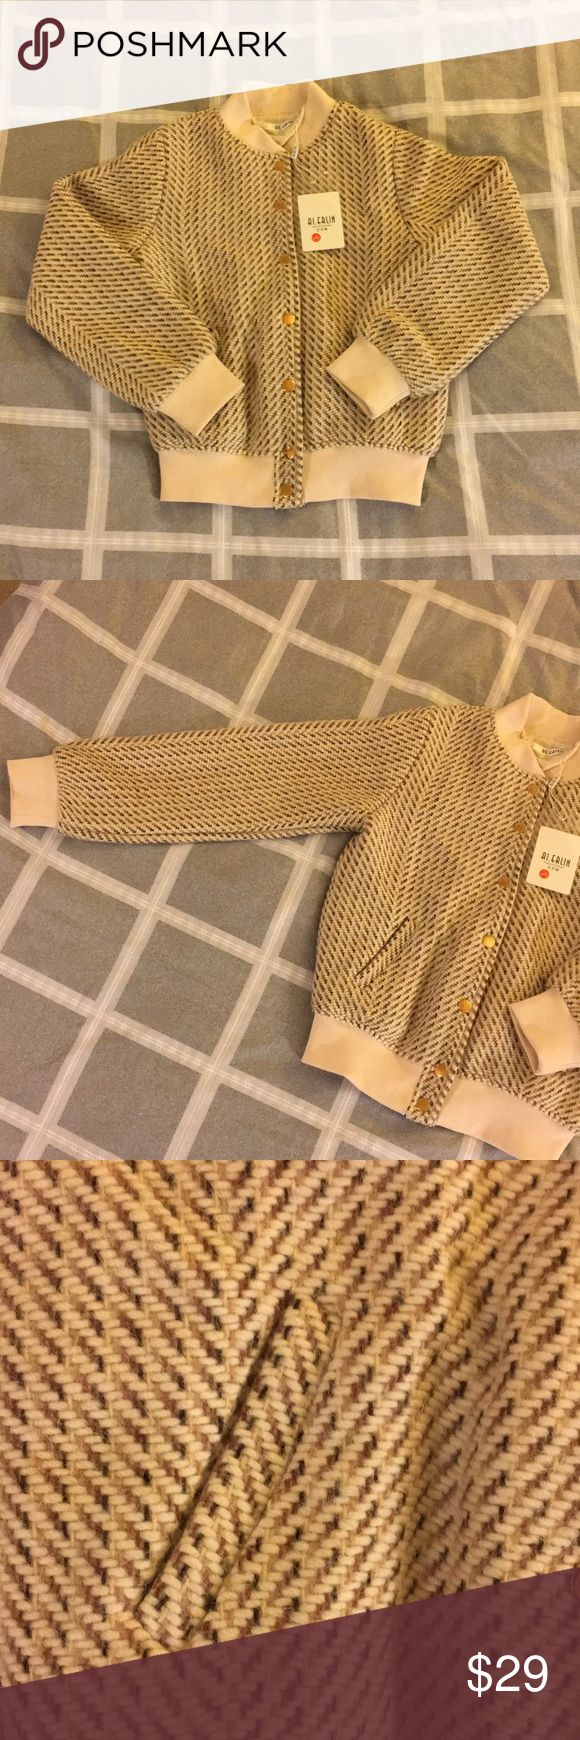 NWT women's tweed jacket Asian women's size large which fits US women's size small. Brand new with tags. Unique tweed texture makes the jacket versatile! Jackets & Coats Utility Jackets